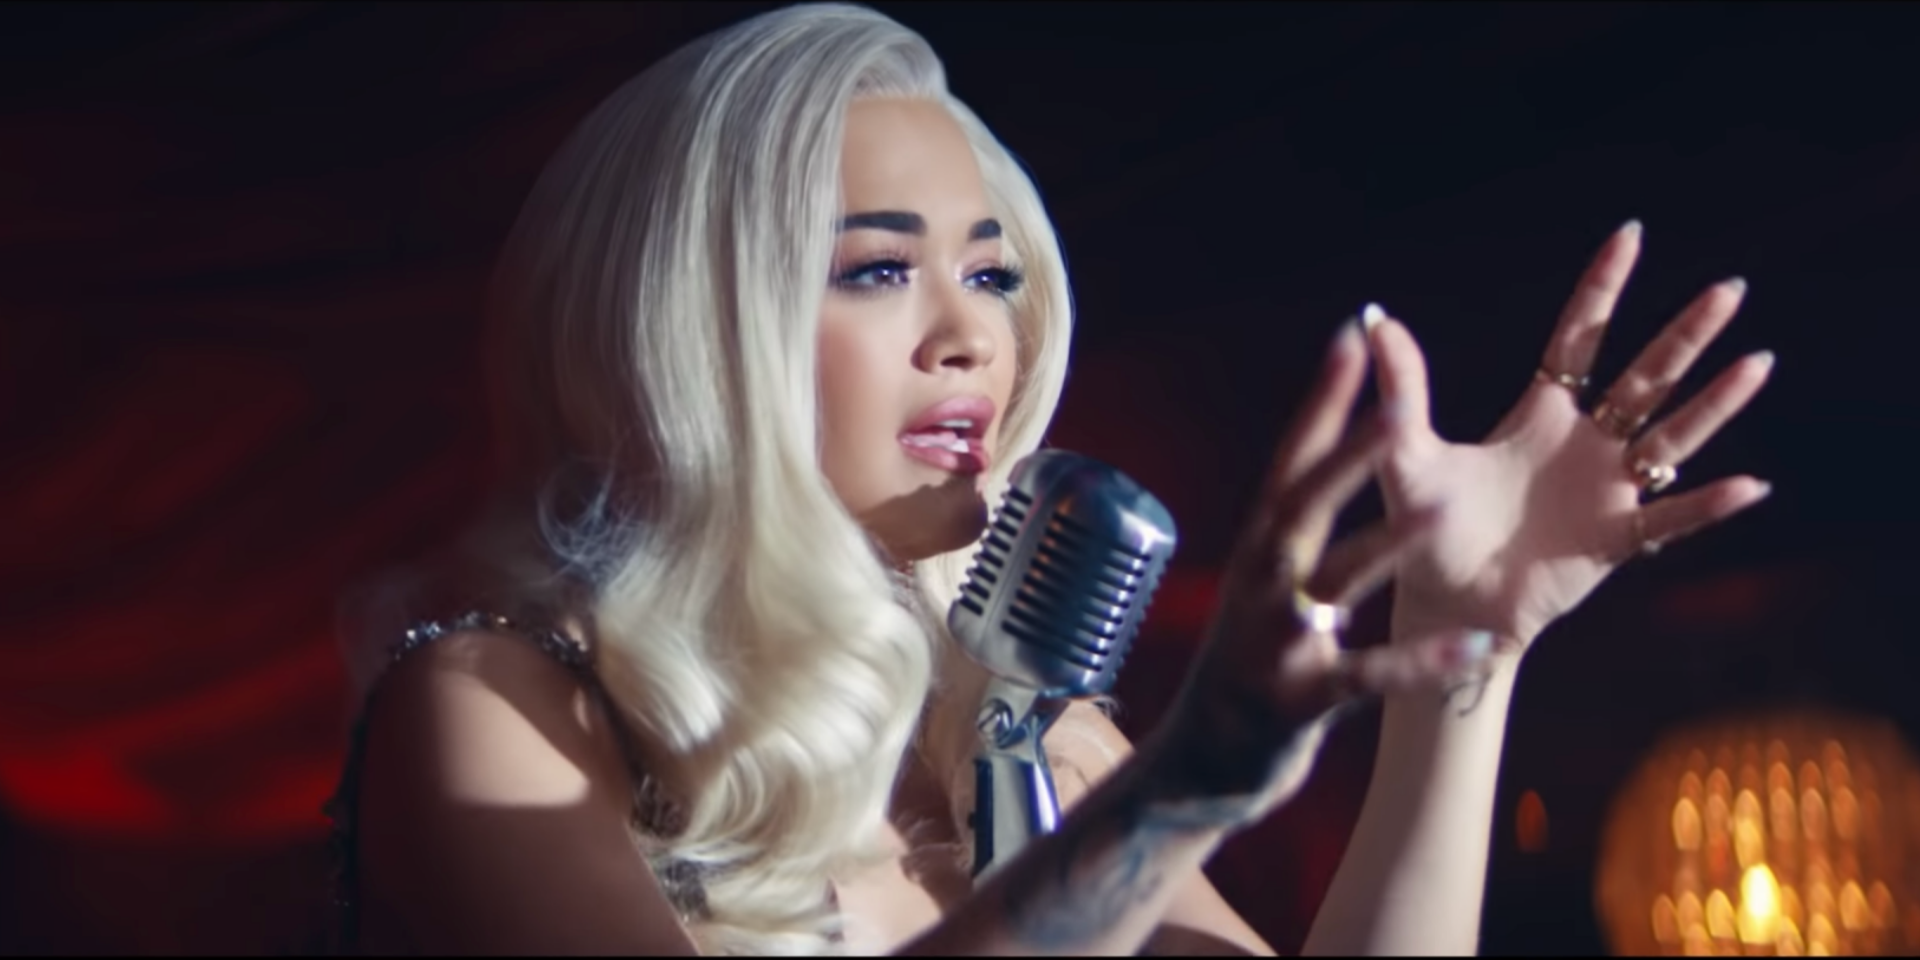 Rita Ora flaunts her chops in new music video for 'Only Want You feat. 6LACK' – watch